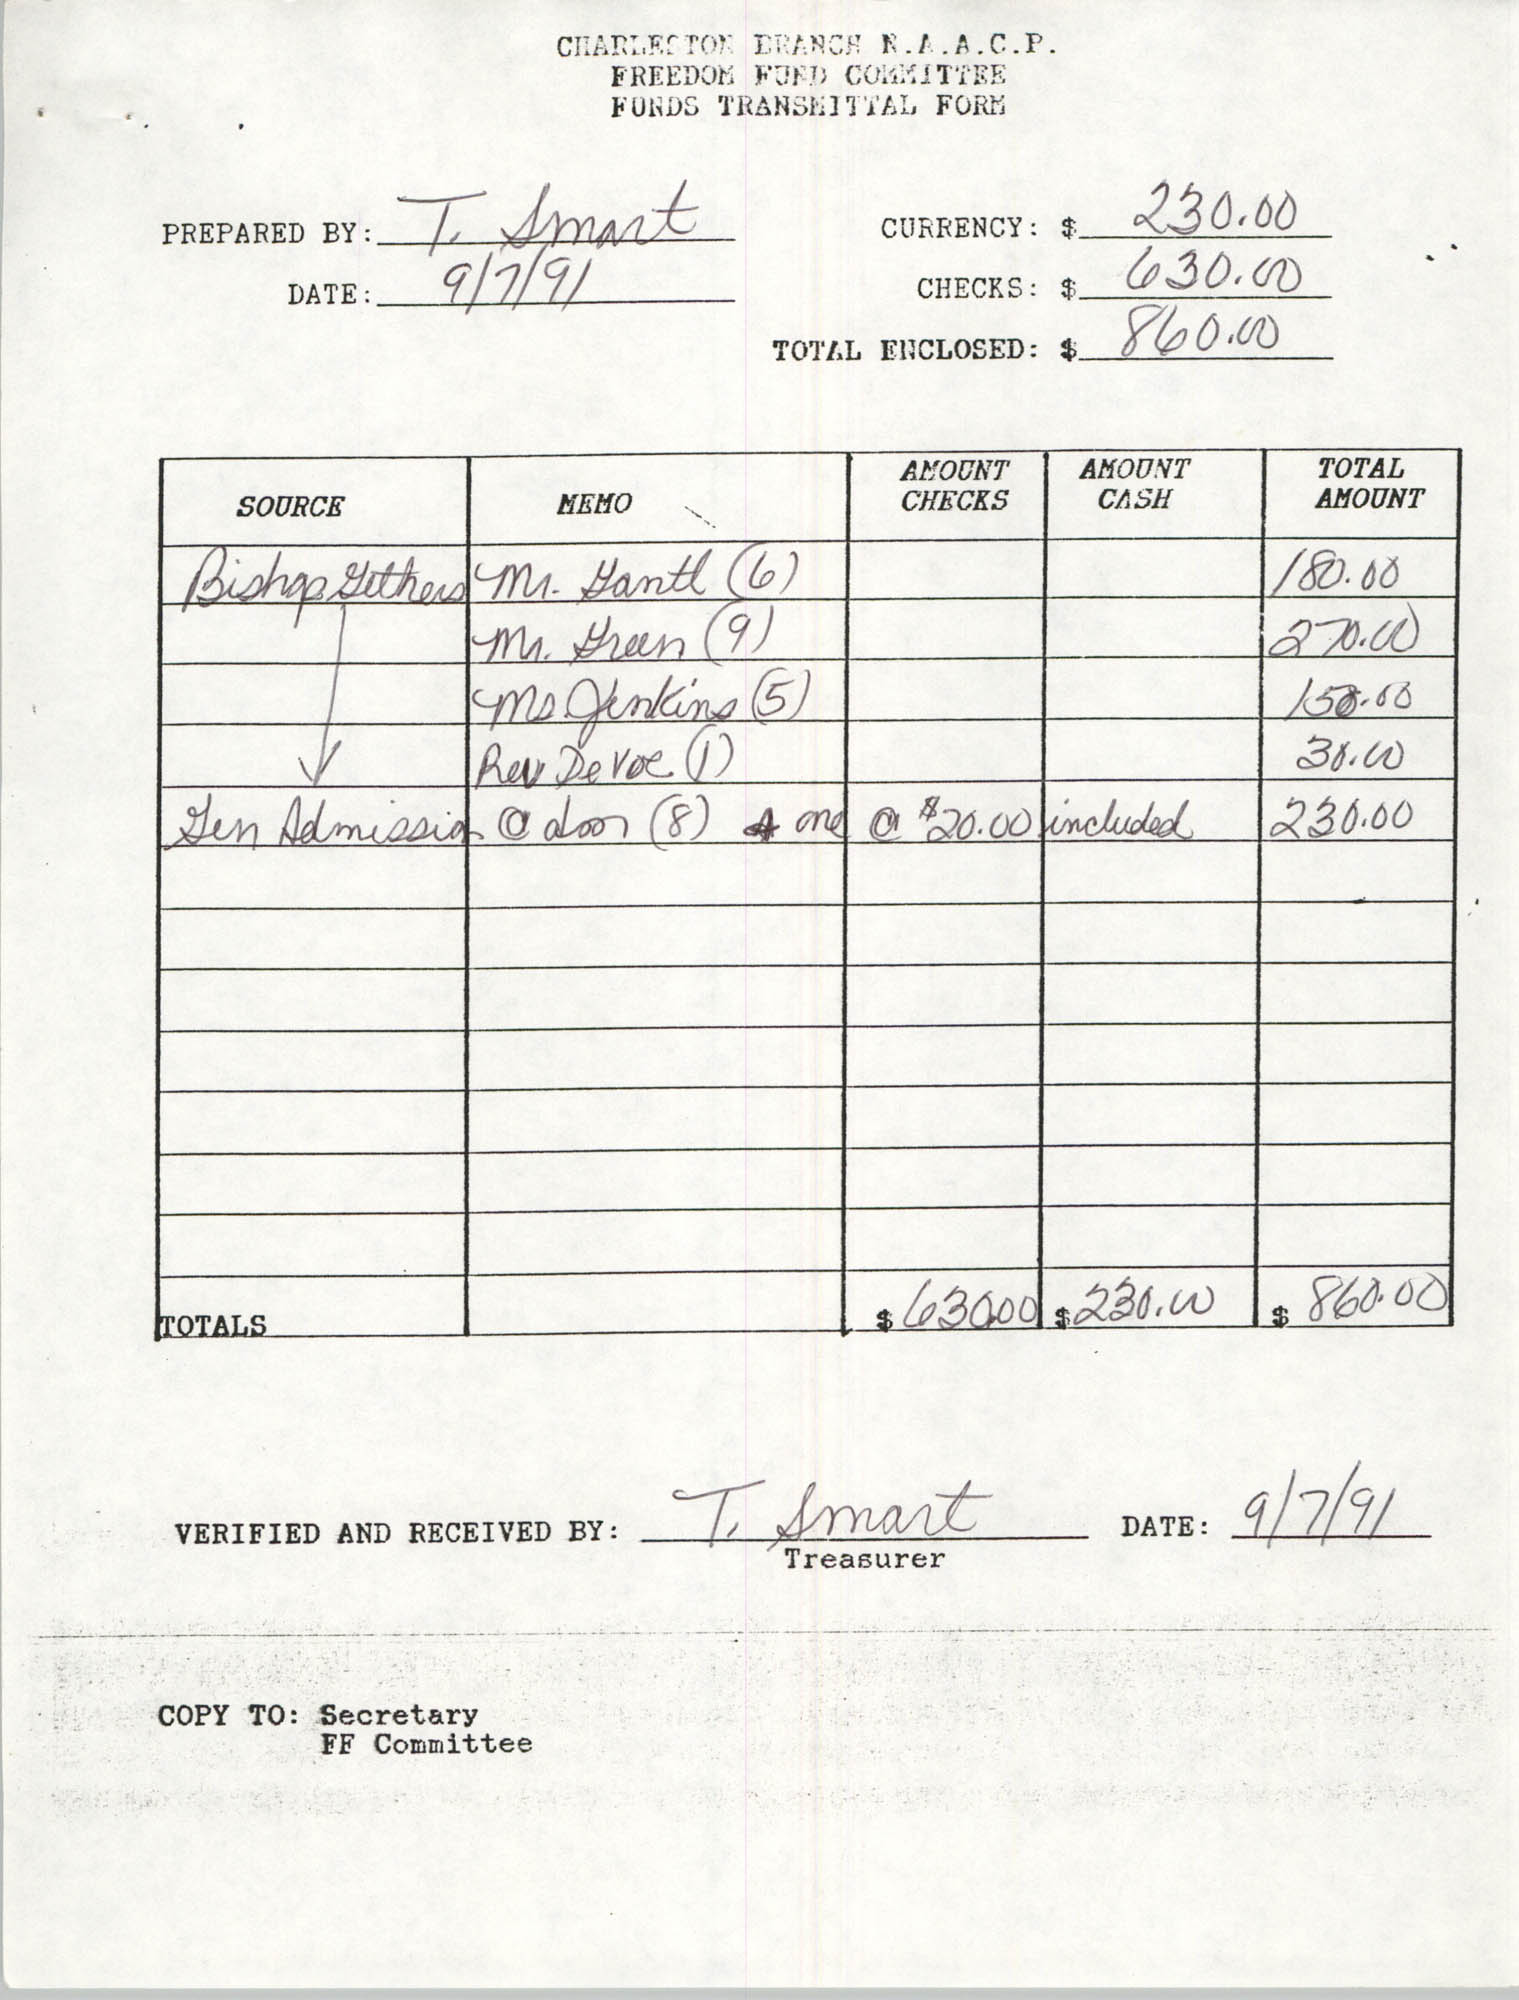 Charleston Branch of the NAACP Funds Transmittal Forms, September 1991, Page 22